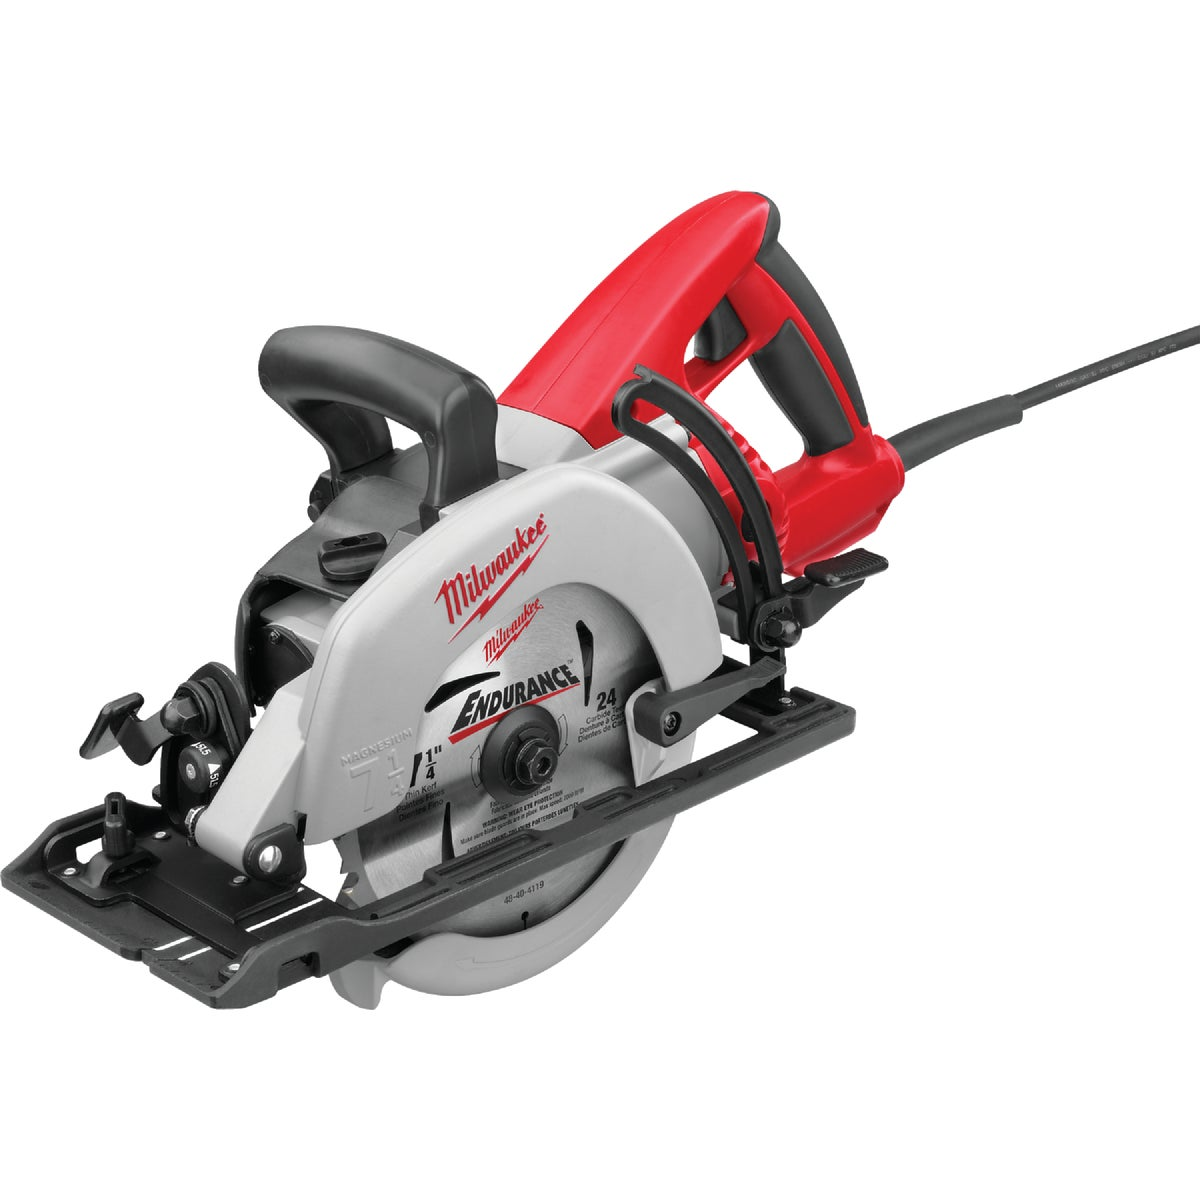 "7-1/4"" WORM DRIVE SAW - 6477-20 by Milwaukee Elec Tool"